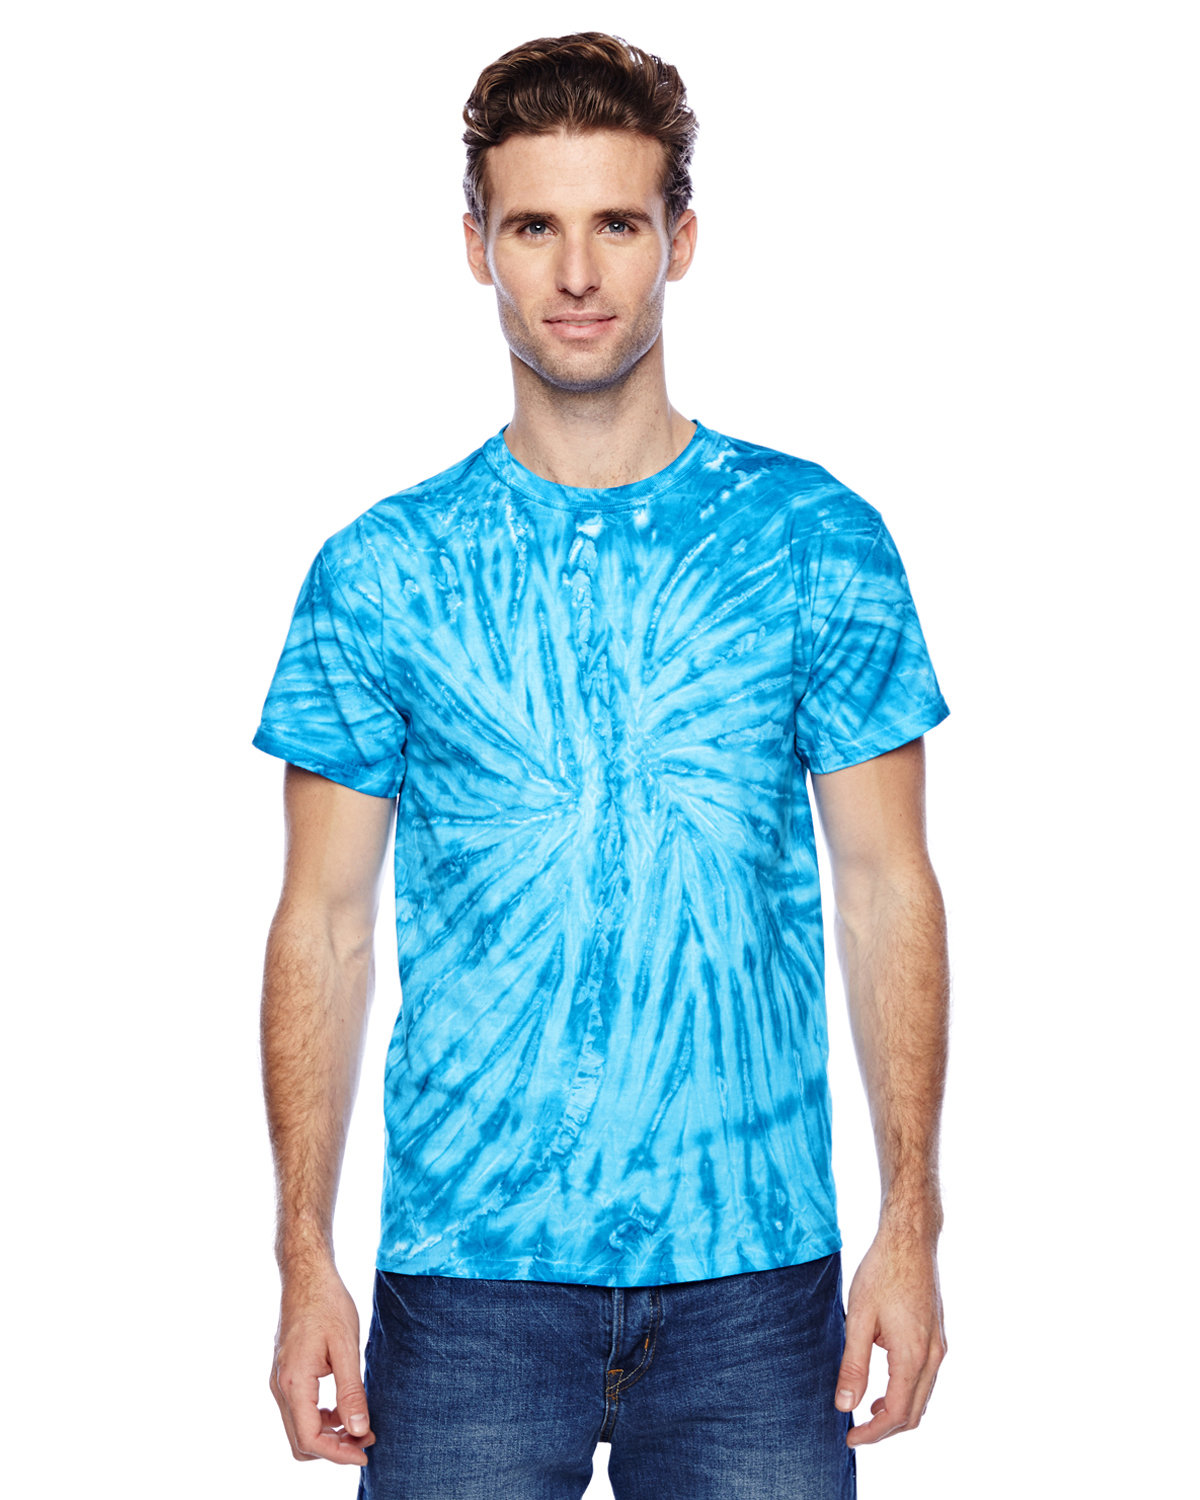 Tie-Dye Adult 100% Cotton Twist Tie-Dyed T-Shirt NEON BLUEBERRY